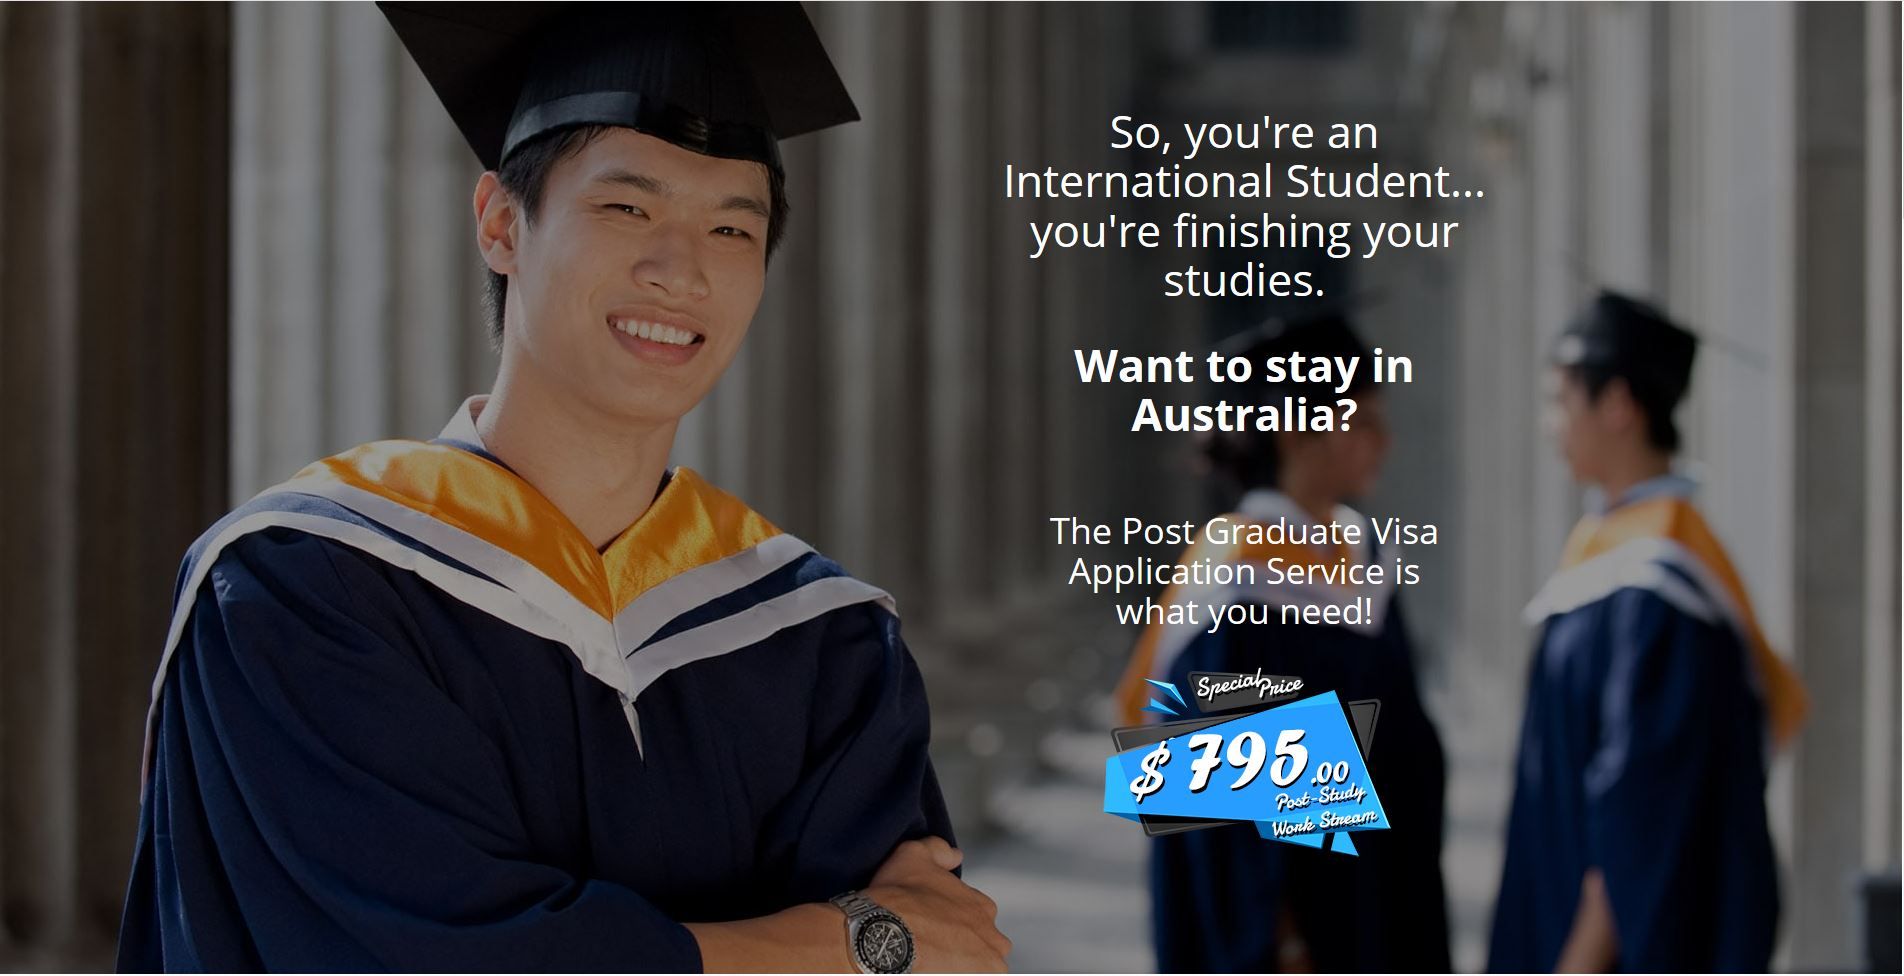 Post Graduate Visa Special Offer